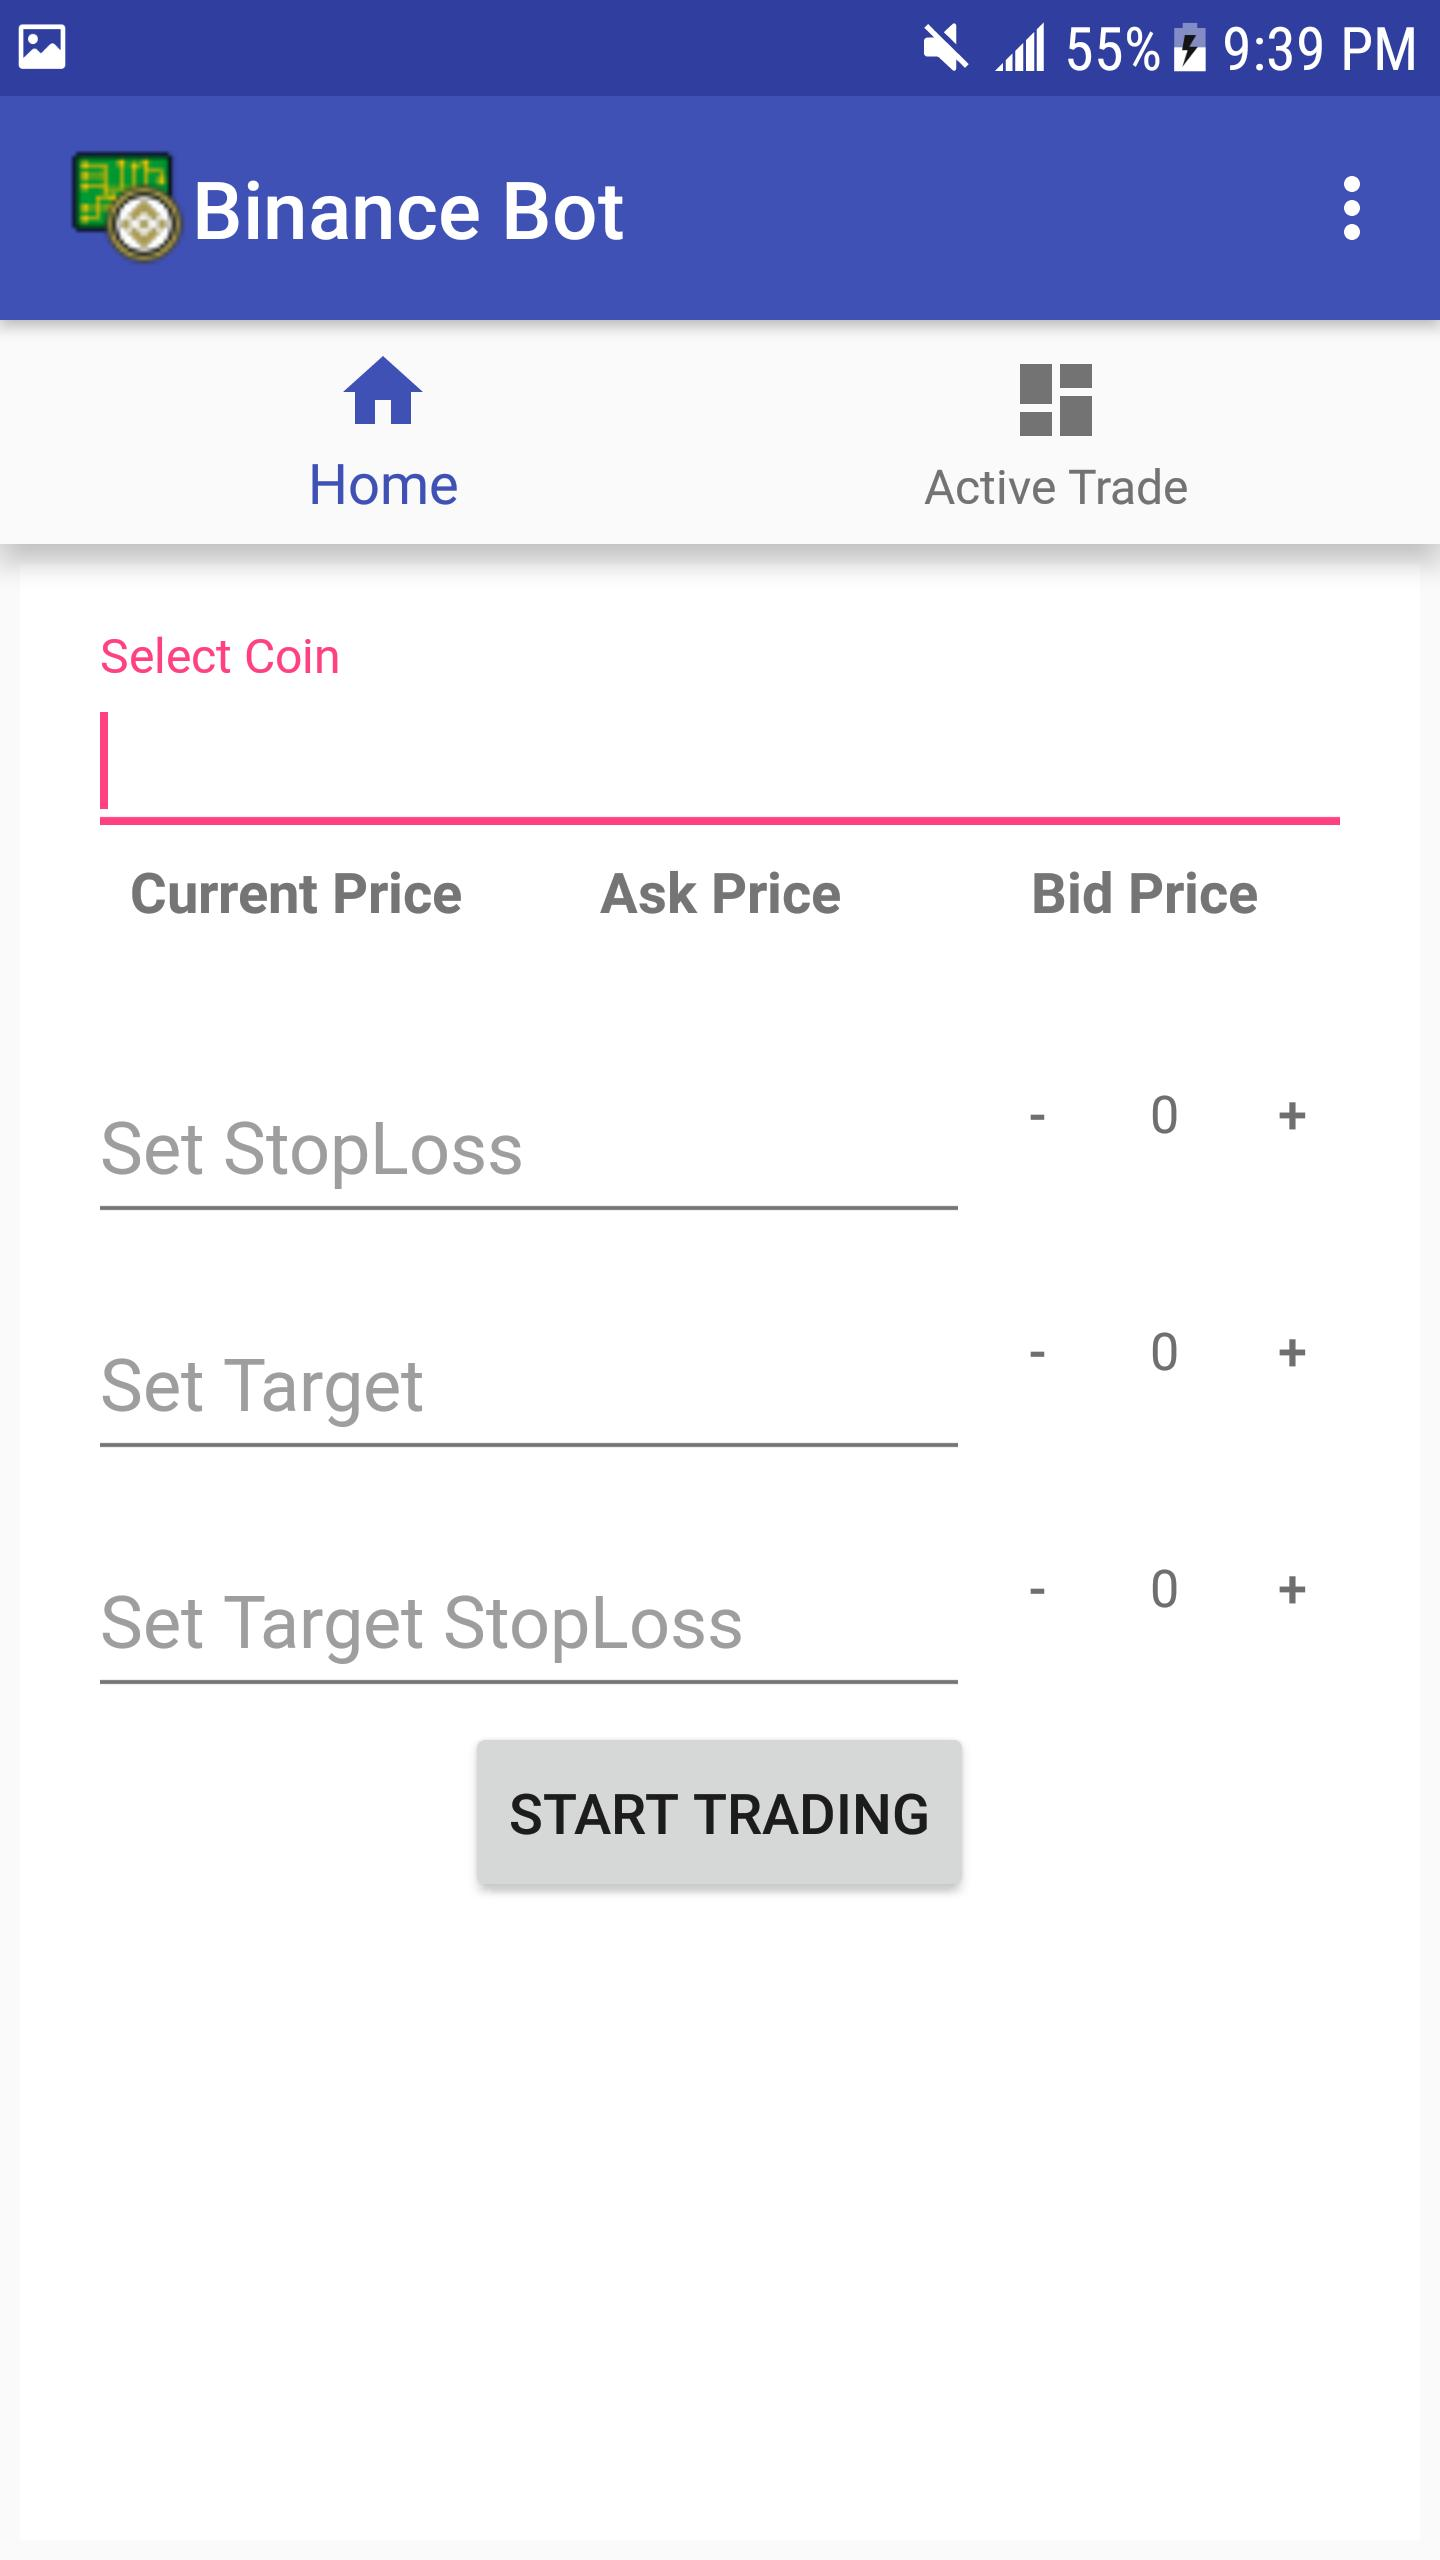 Binance Bot for Android - APK Download